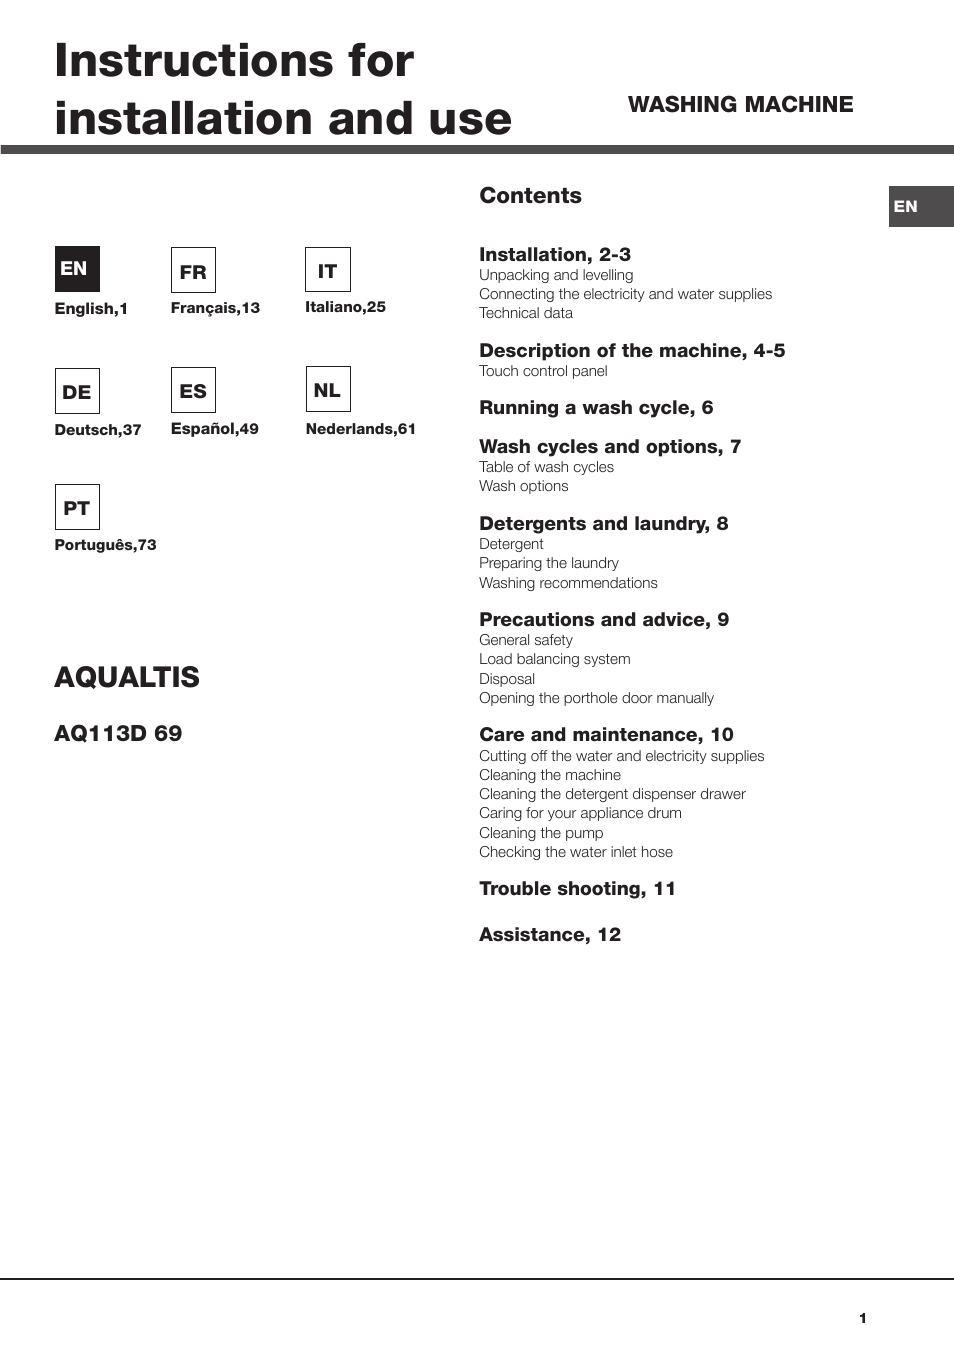 Hotpoint ariston aq113d 69 user manual 84 pages fandeluxe Choice Image